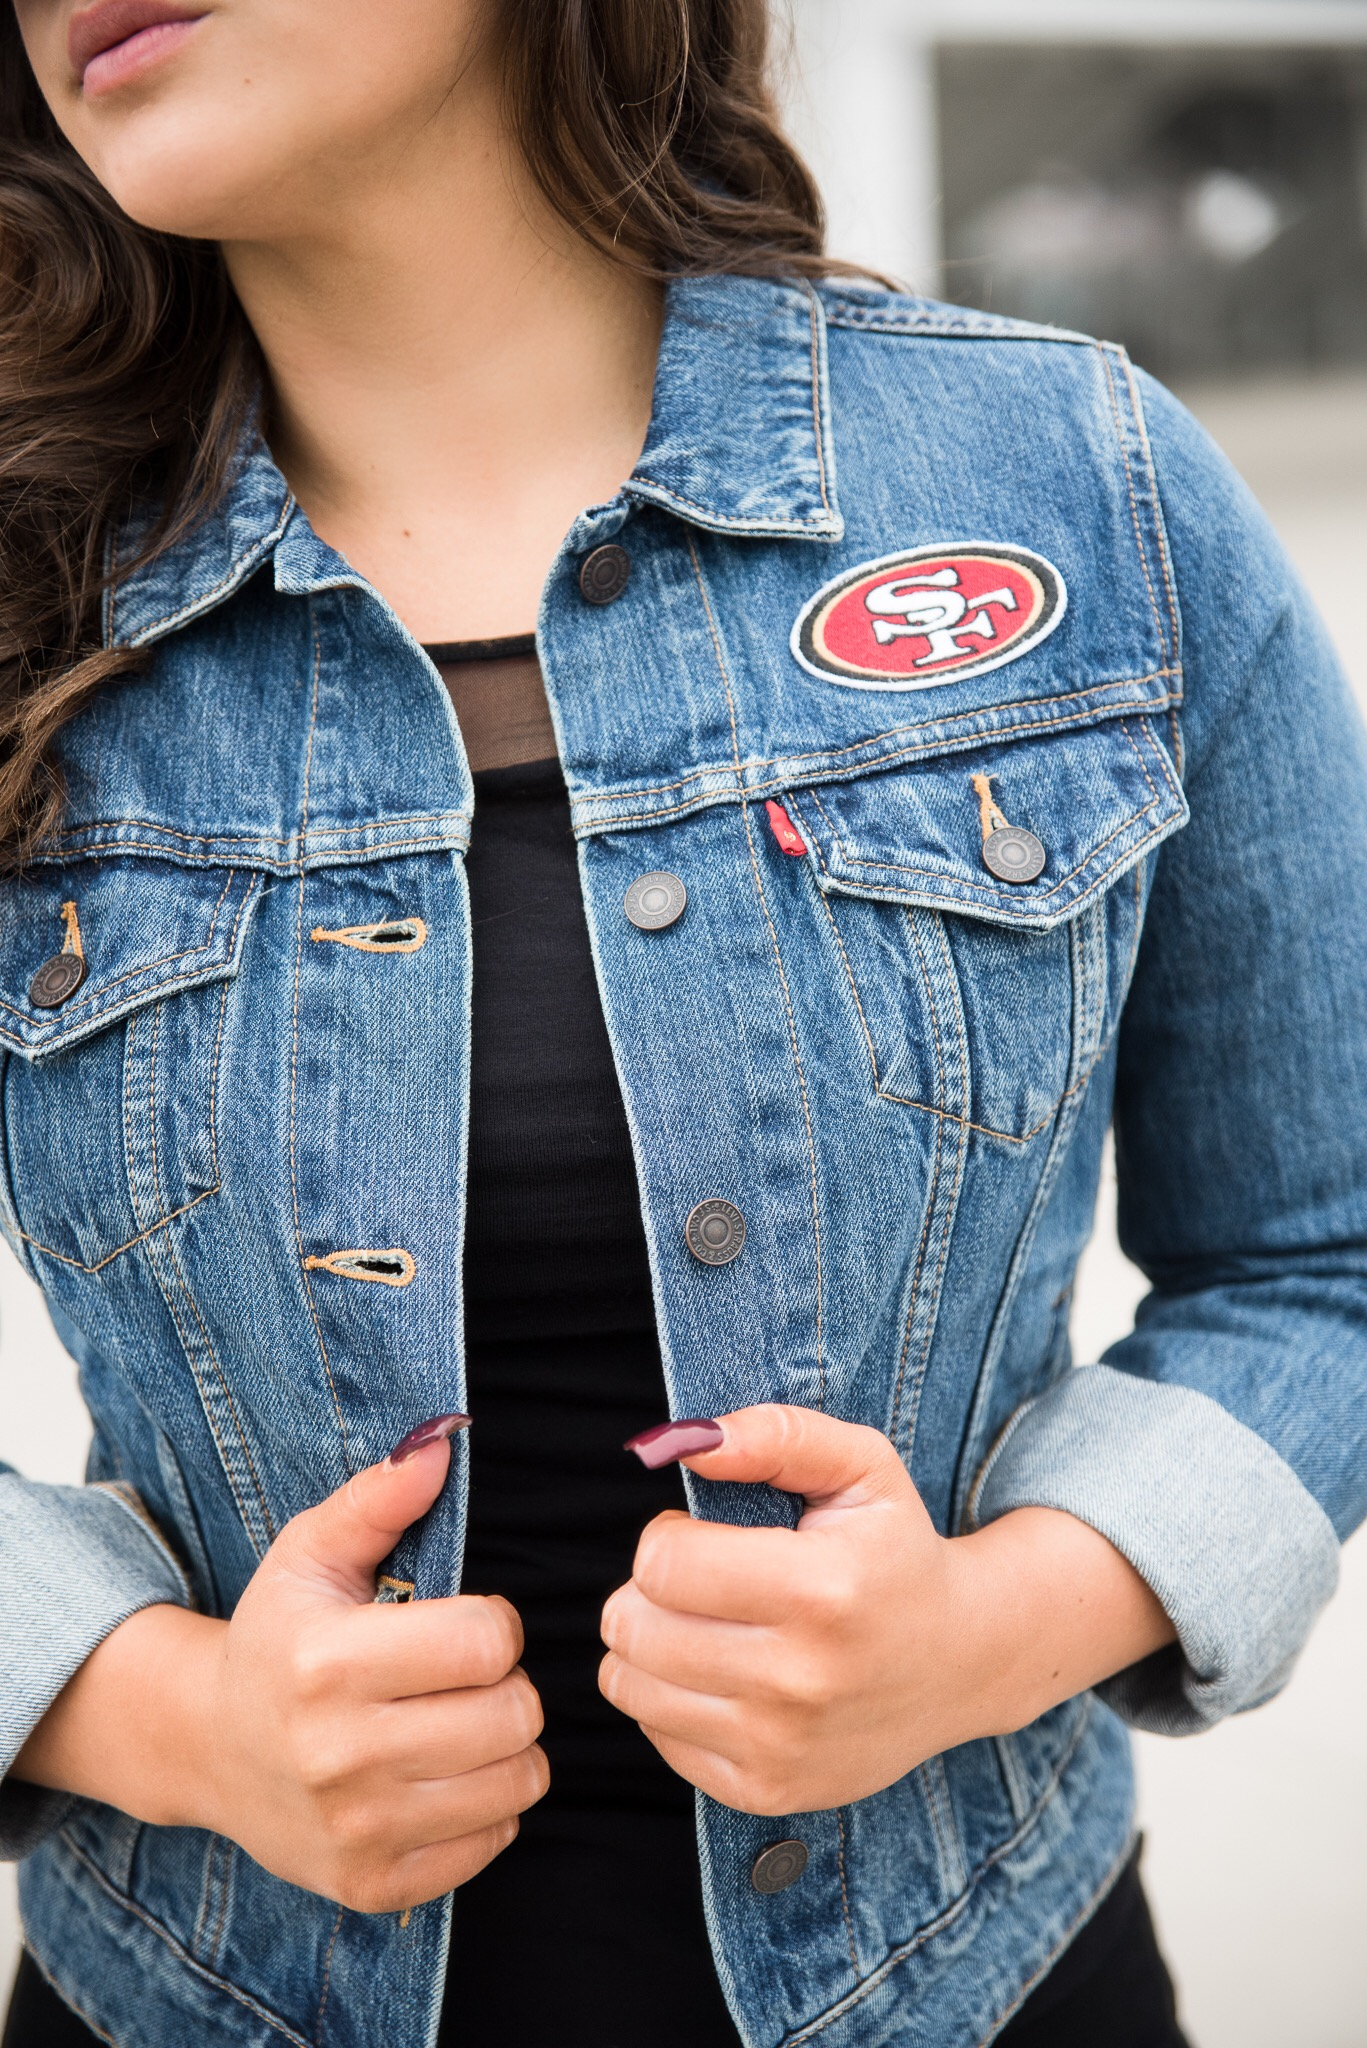 sf 49ers outfit